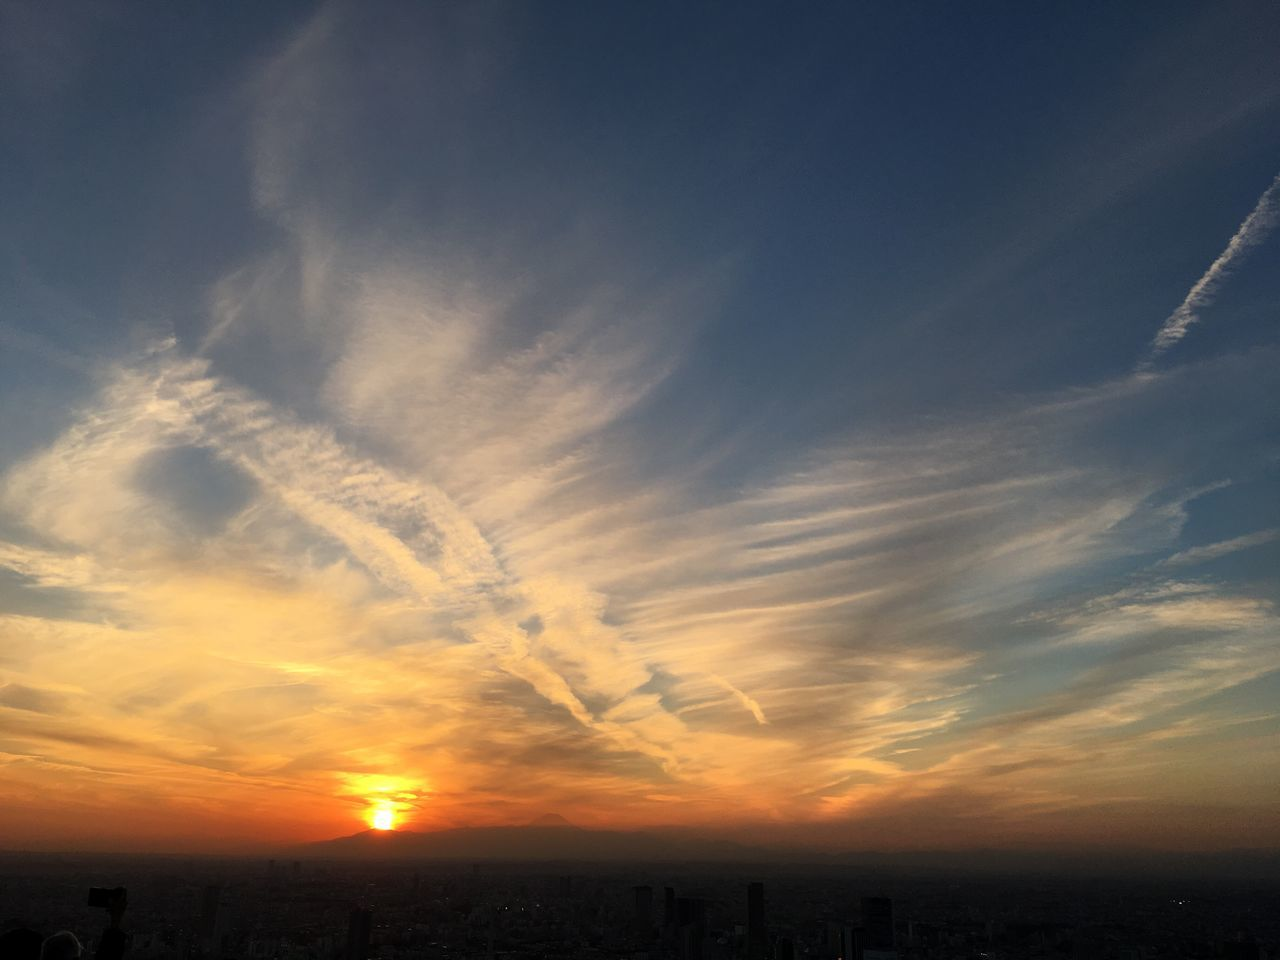 Japan Roppongi Sunset Roppongihills Tokyo Skyview fuji Sky Nature Tranquility Silhouette Landscape Scenics Beauty In Nature Cloud - Sky Tranquil Scene Outdoors No People Day Orange